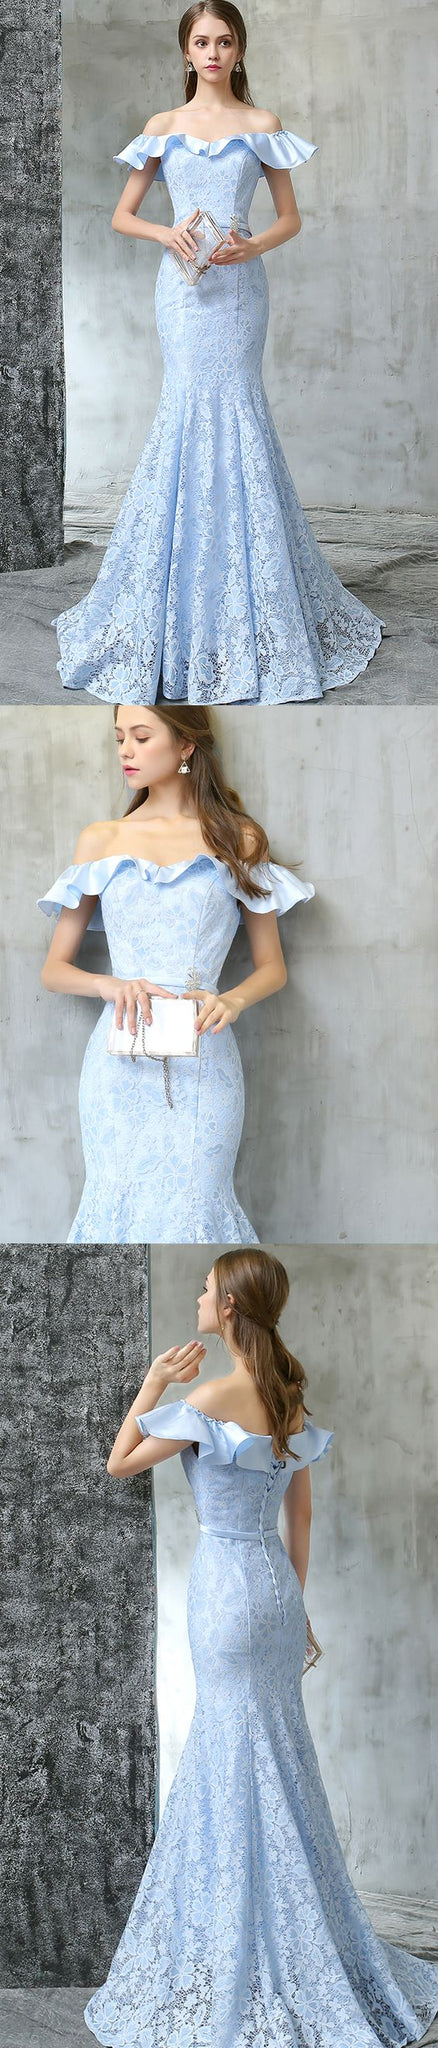 off the shoulder prom dress mermaid lace evening dress sky blue prom gowns cocktail dress,HS076